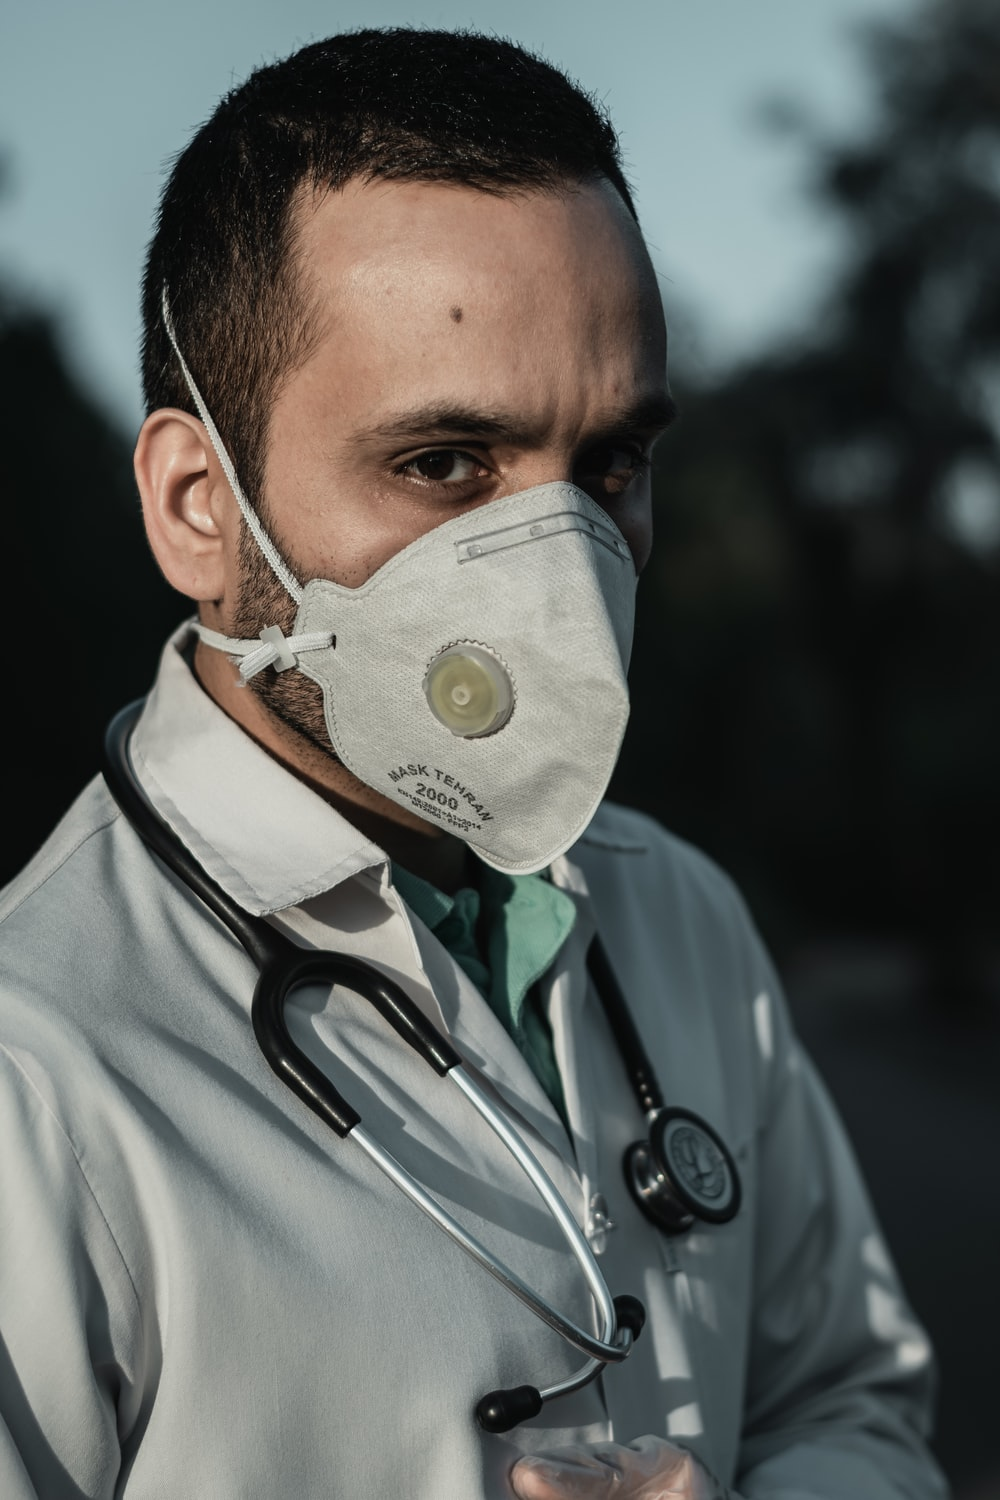 Doctor wearing a mask